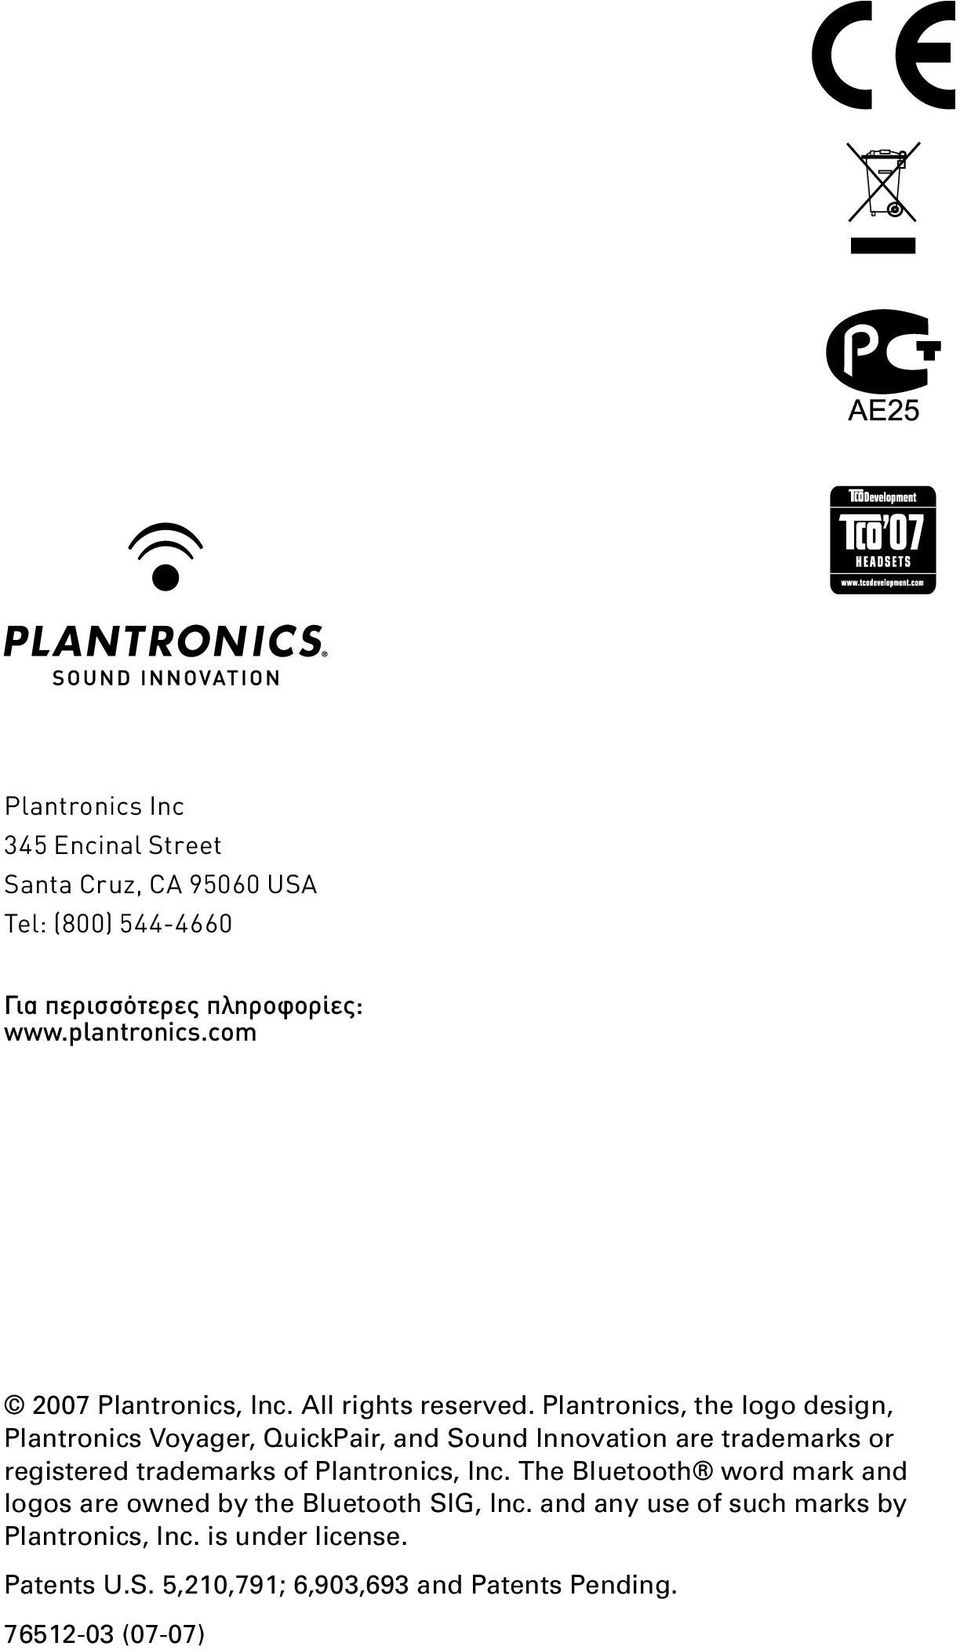 trademarks or registered trademarks of Plantronics, Inc The Bluetooth word mark and logos are owned by the Bluetooth SIG, Inc